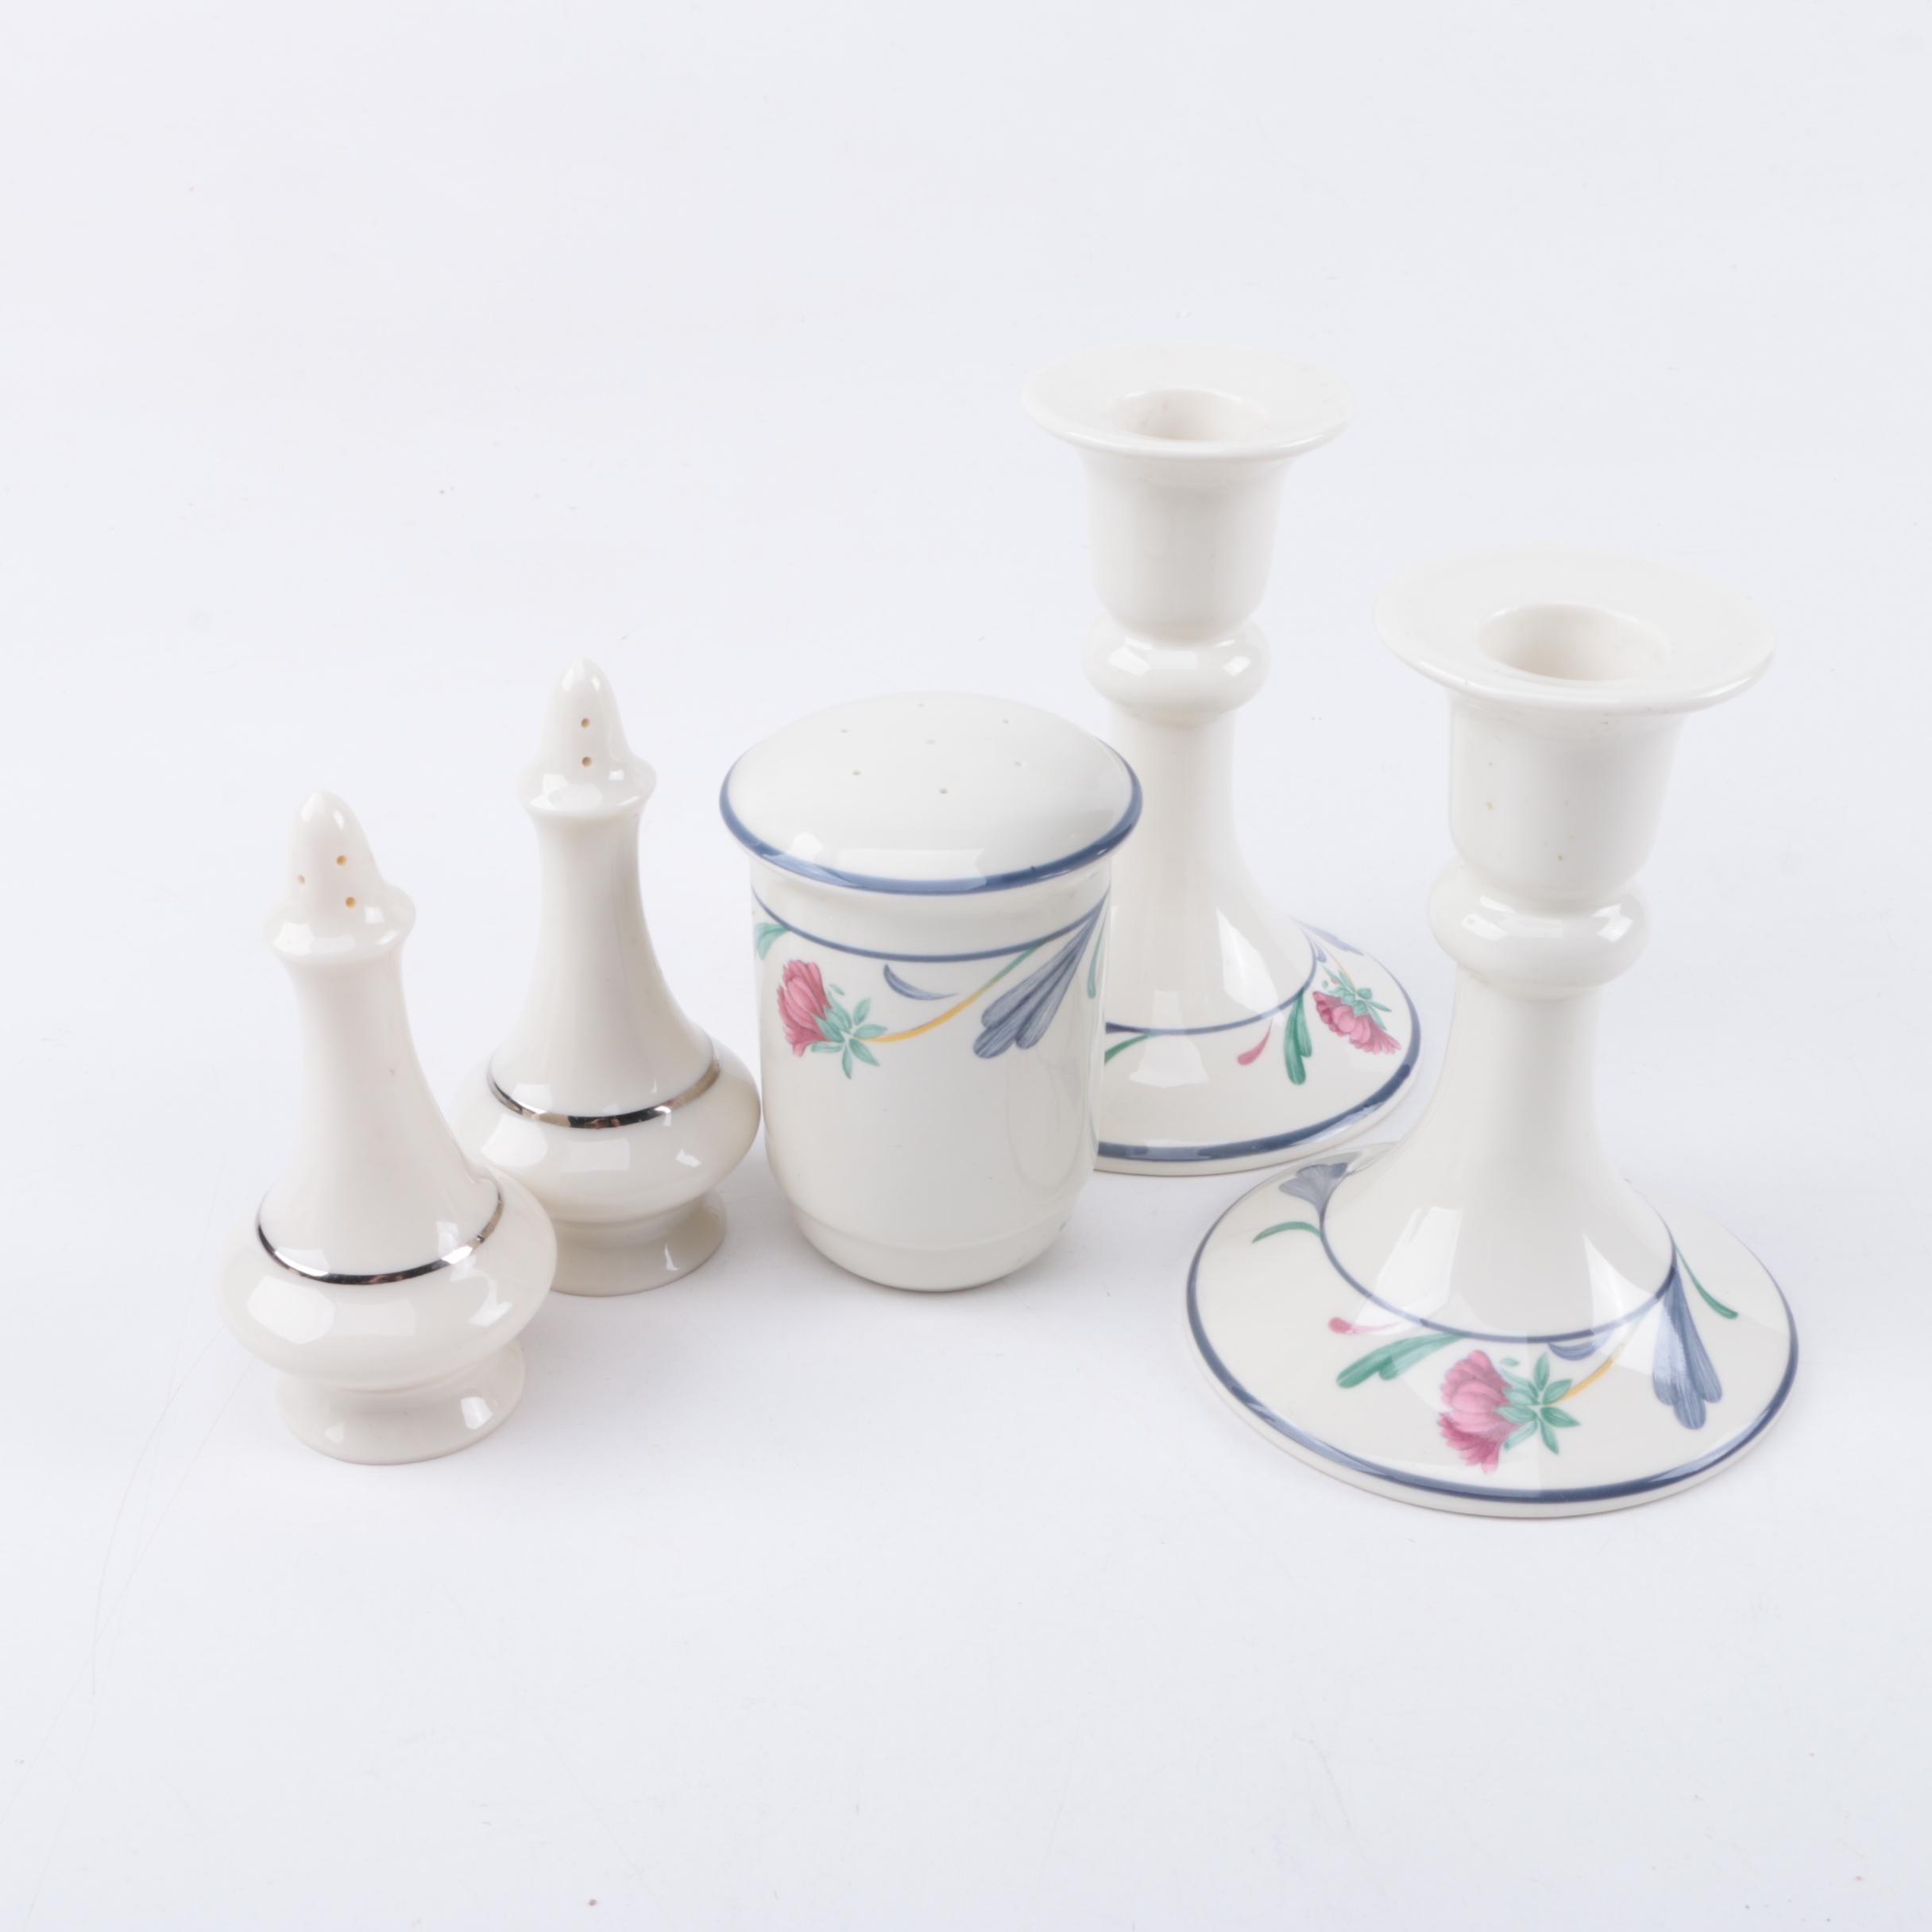 Lenox Porcelain Salt and Pepper Shakers and Candleholders